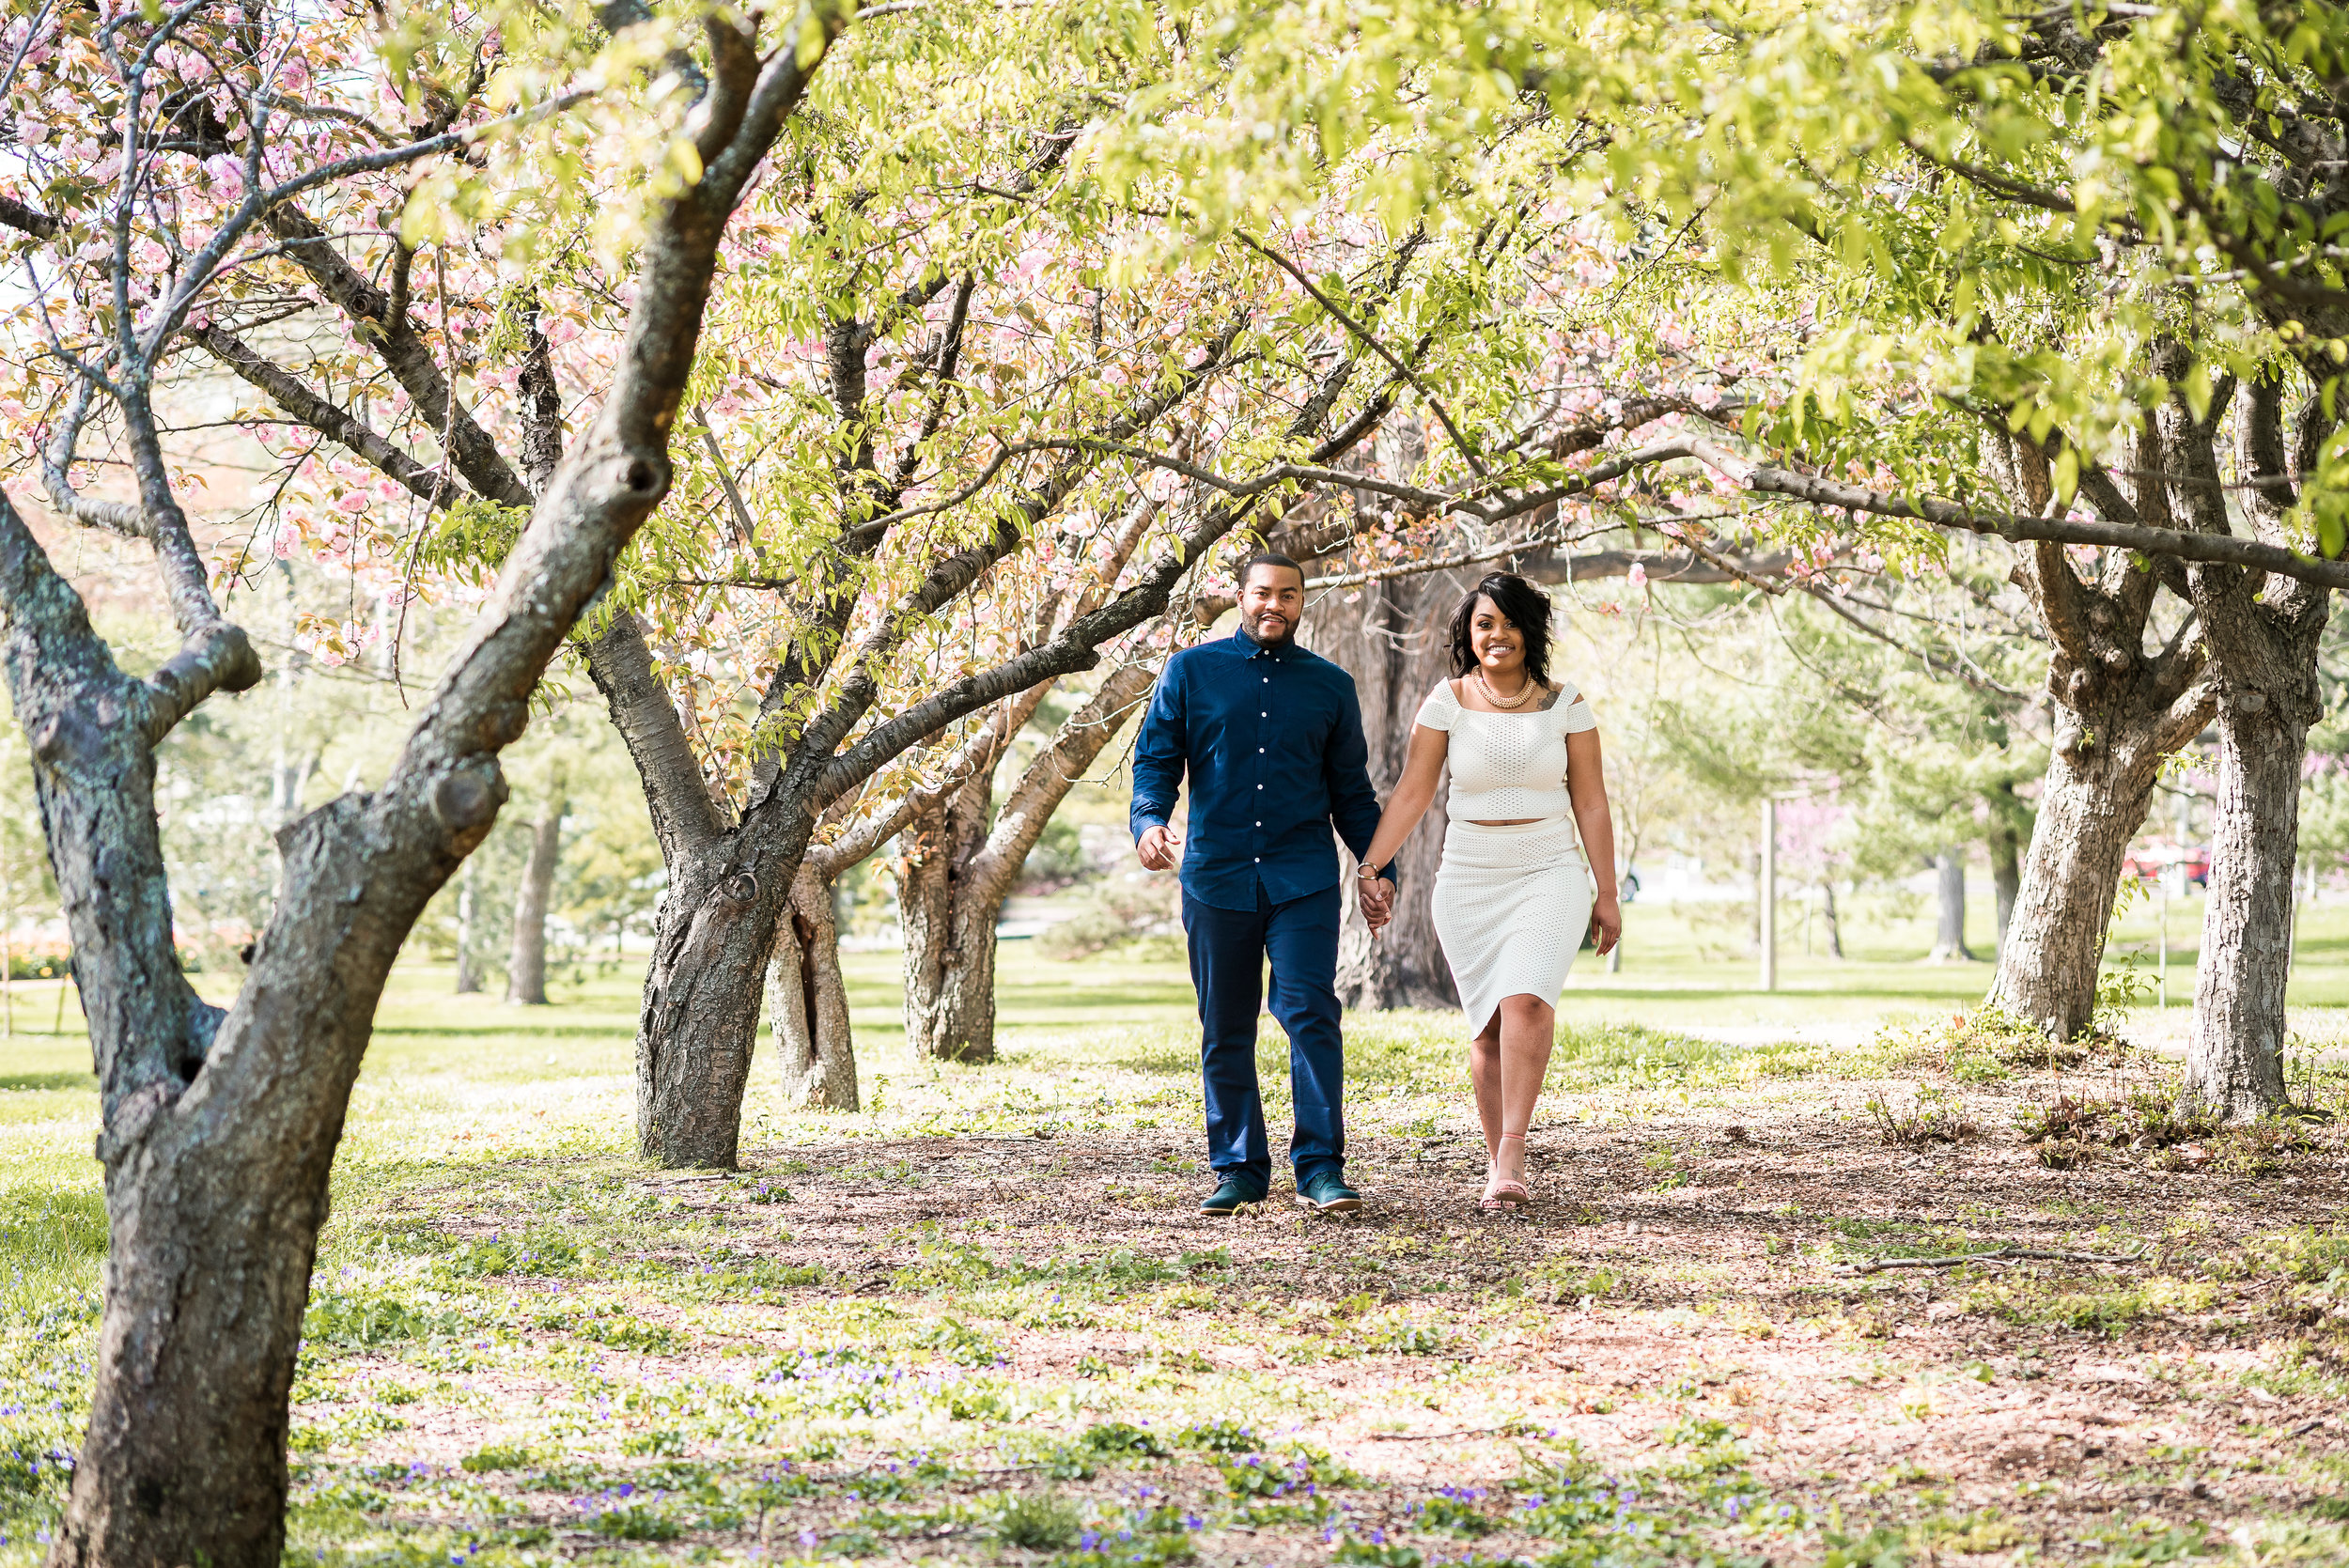 st-louis-wedding-photographer-forest-park-engagement-19.jpg